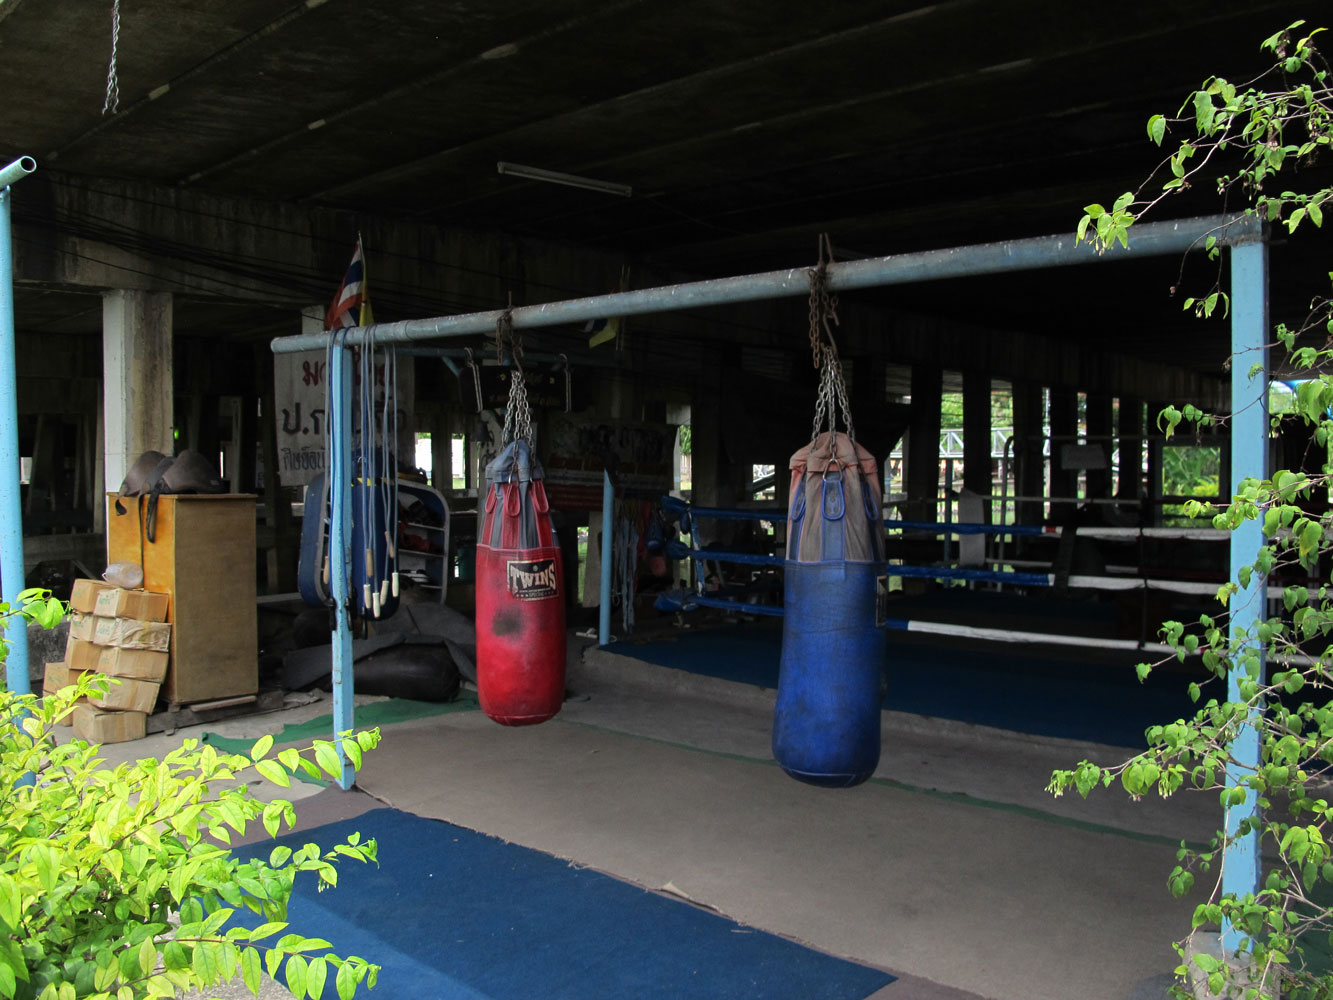 Muay Thai boxing gym filming location in Bangkok Thailand